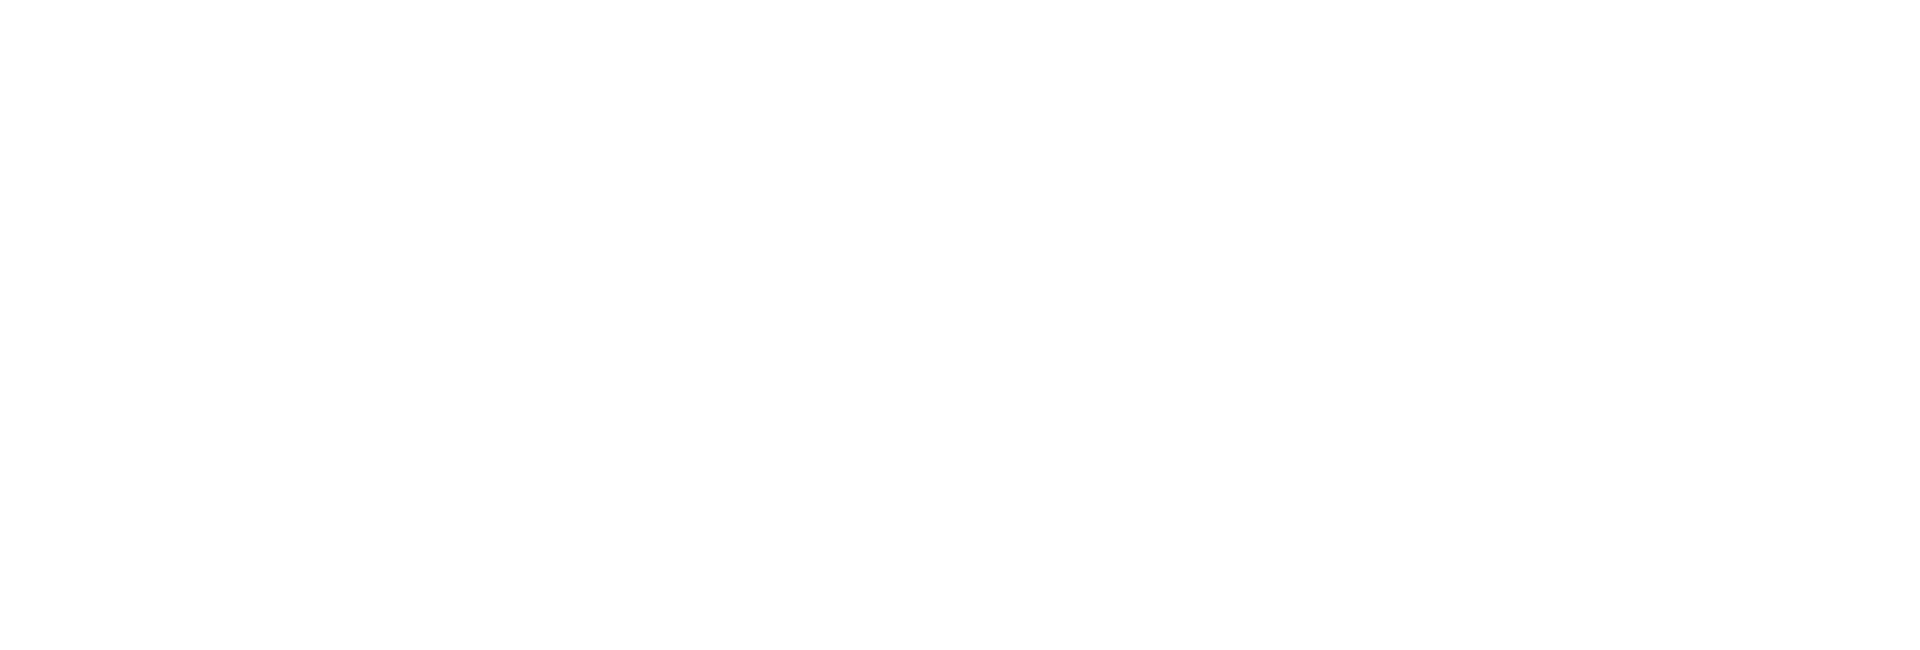 nouvelle_gamme.png